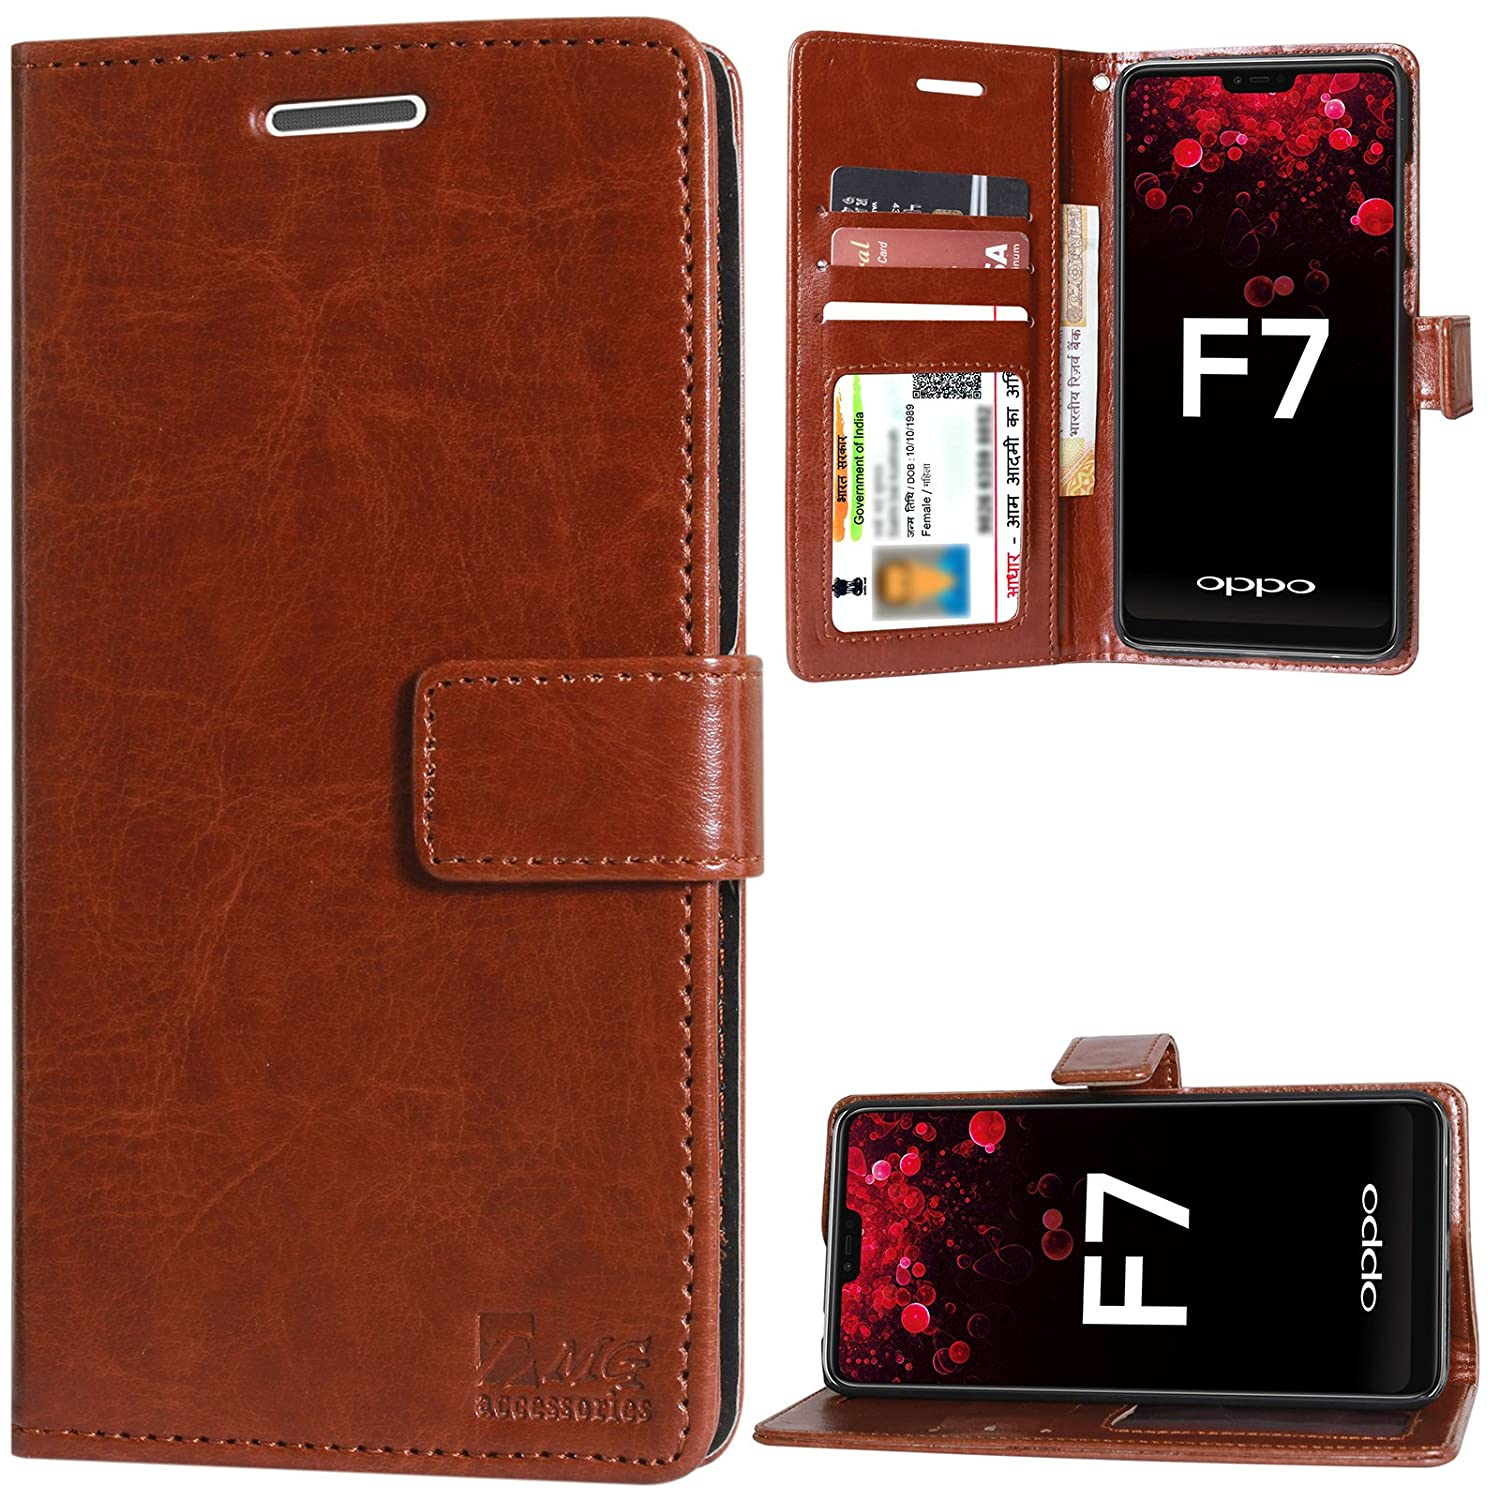 buy online aeca5 11e03 DMG Leather Flip Cover for Oppo F7, Wallet Flip Cover Stand Case for Oppo  F7 (Leather Brown)